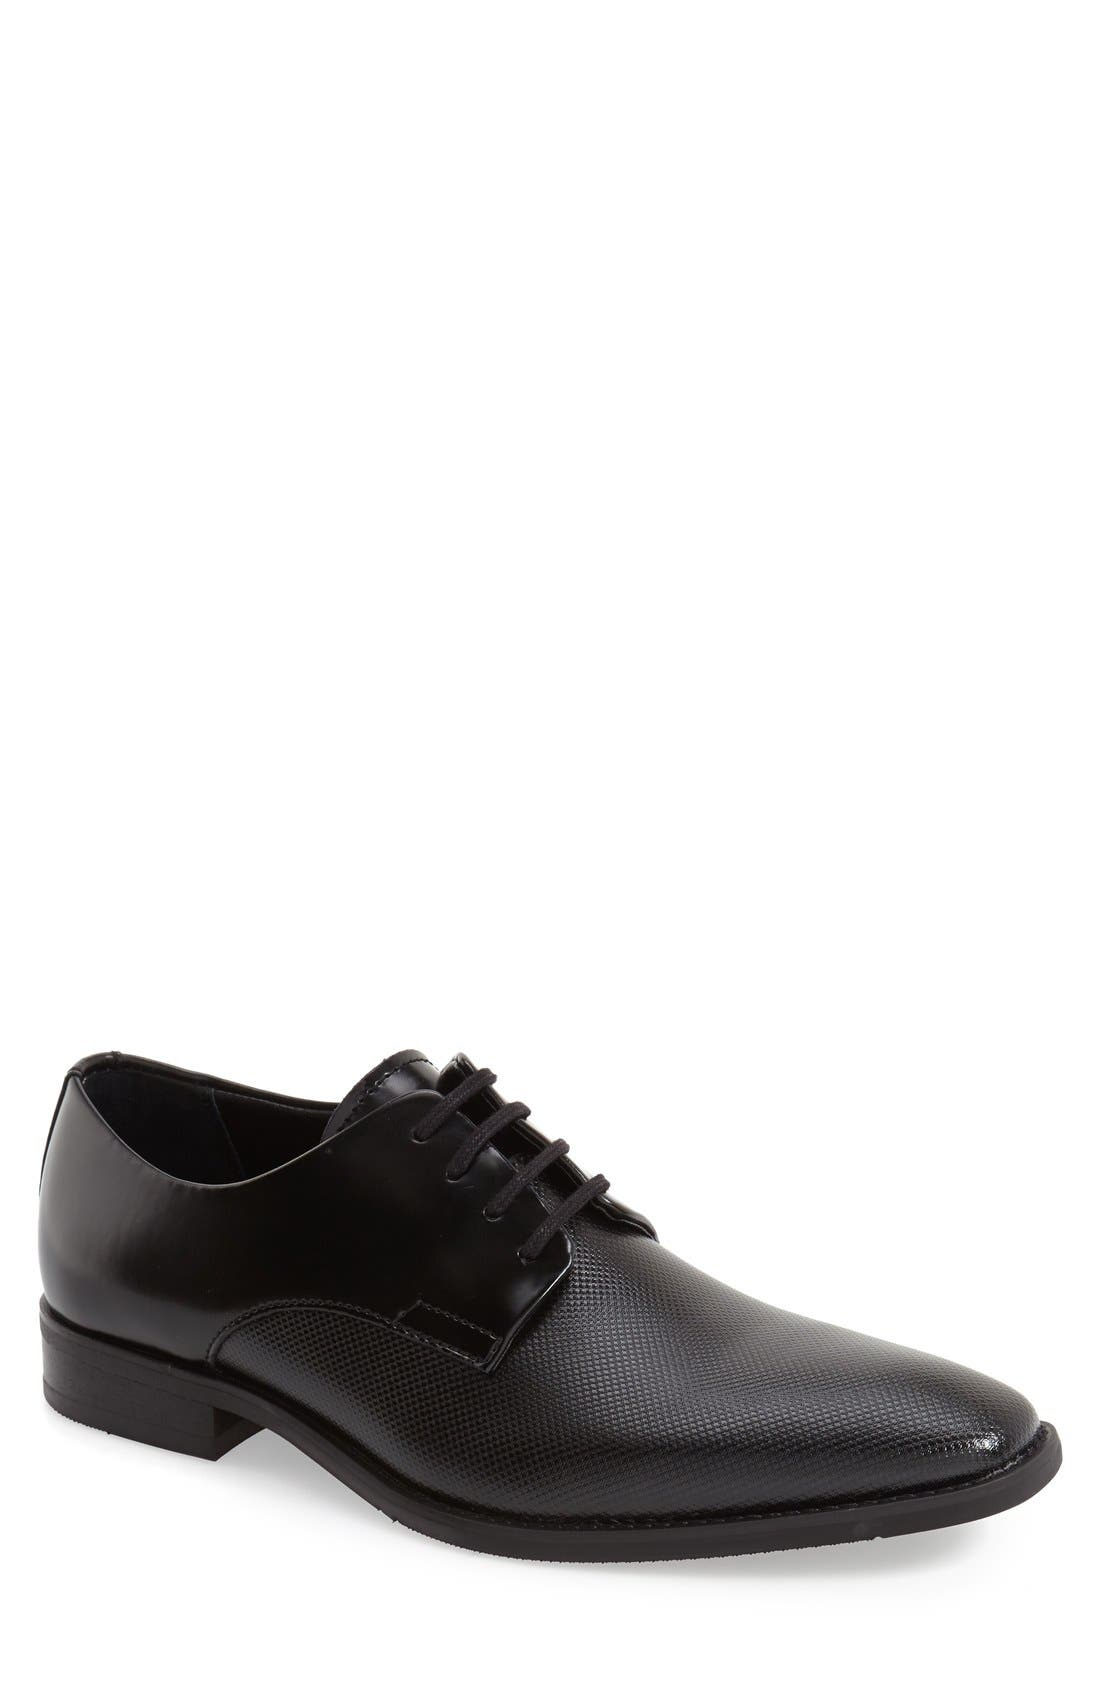 CALVIN KLEIN 'Ramses' Plain Toe Derby, Main, color, BLACK LEATHER